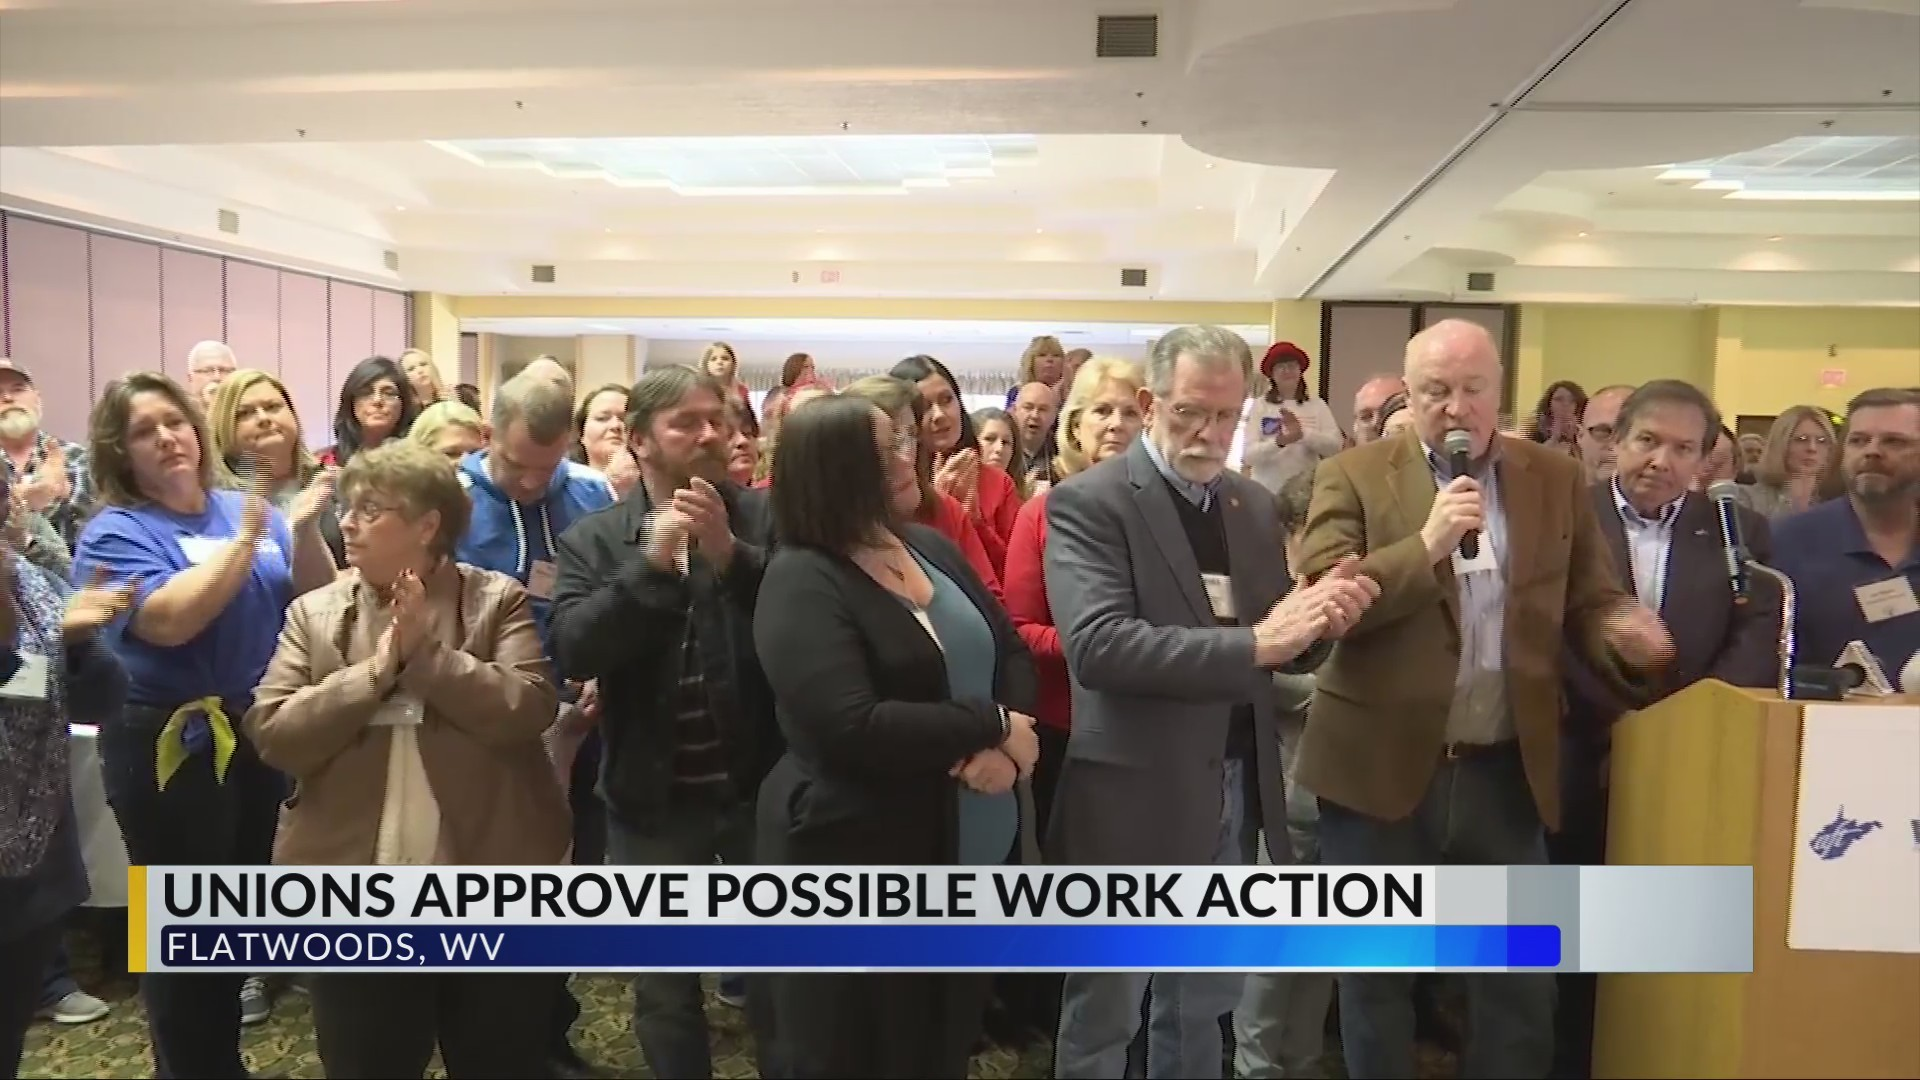 WV Unions Approve Possible Work Action